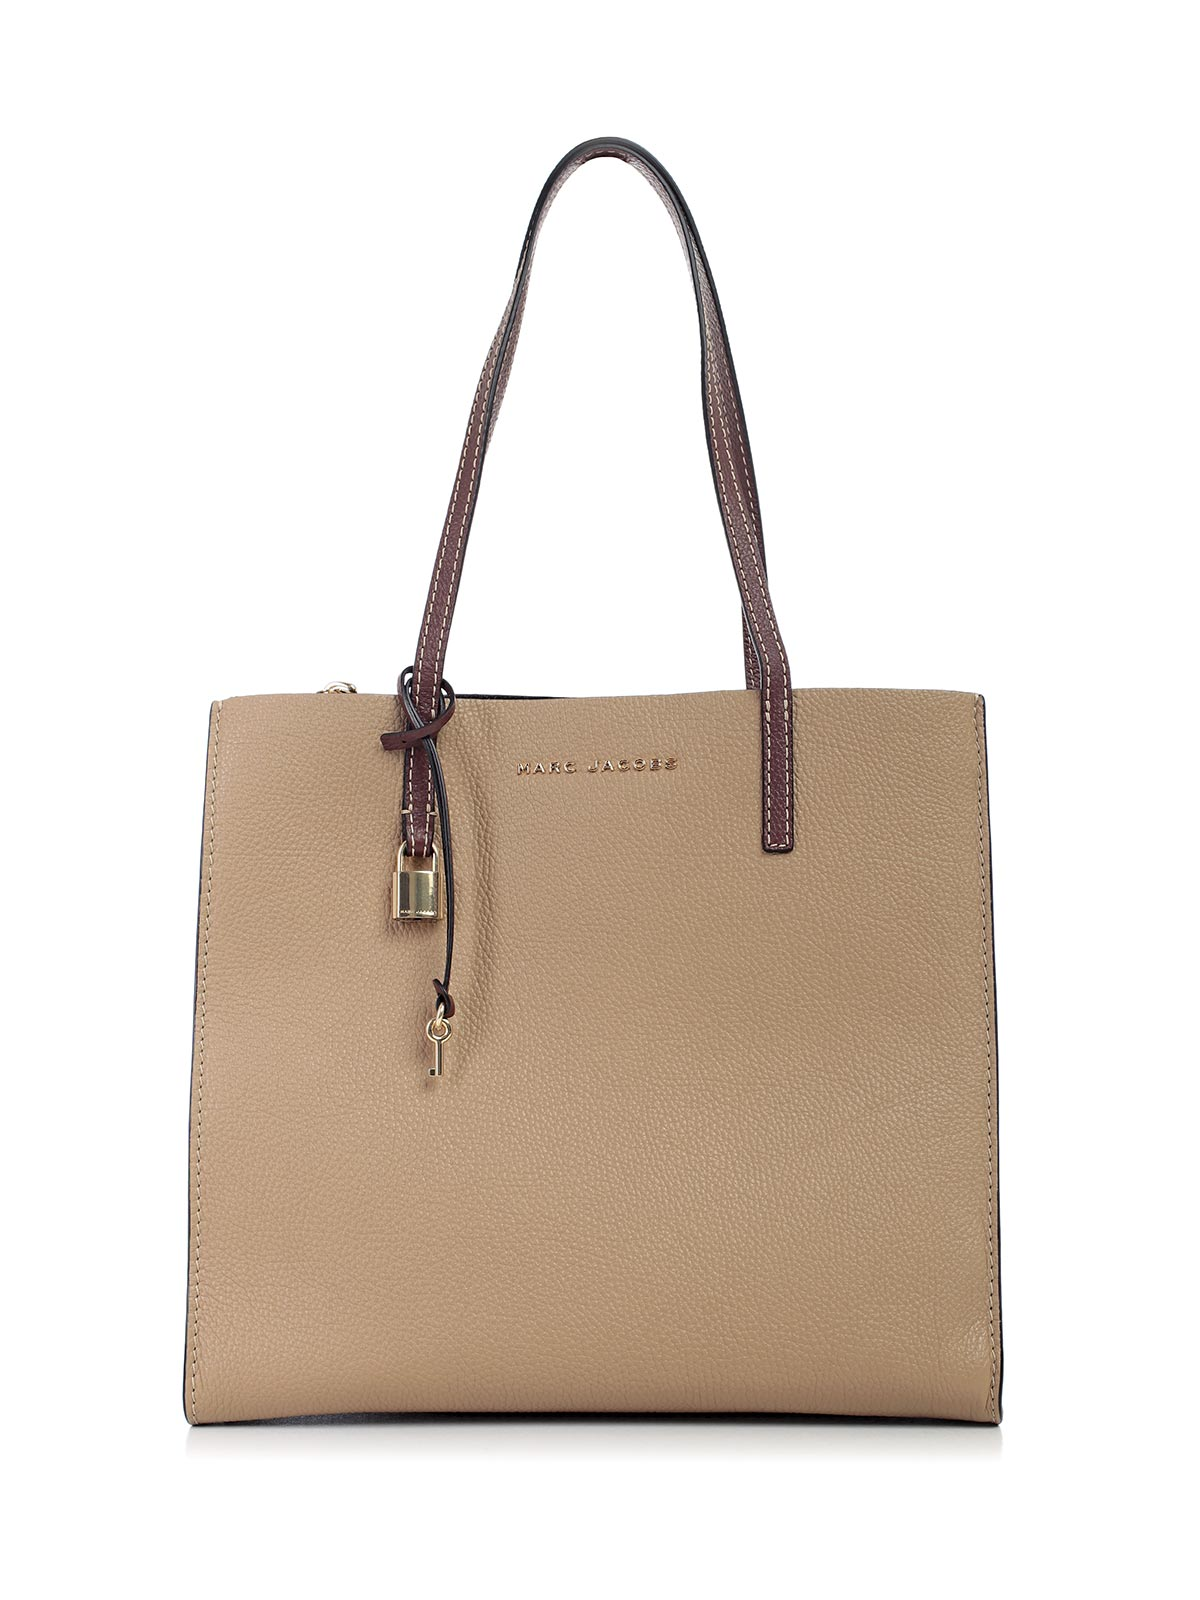 Picture of MARC JACOBS Totes